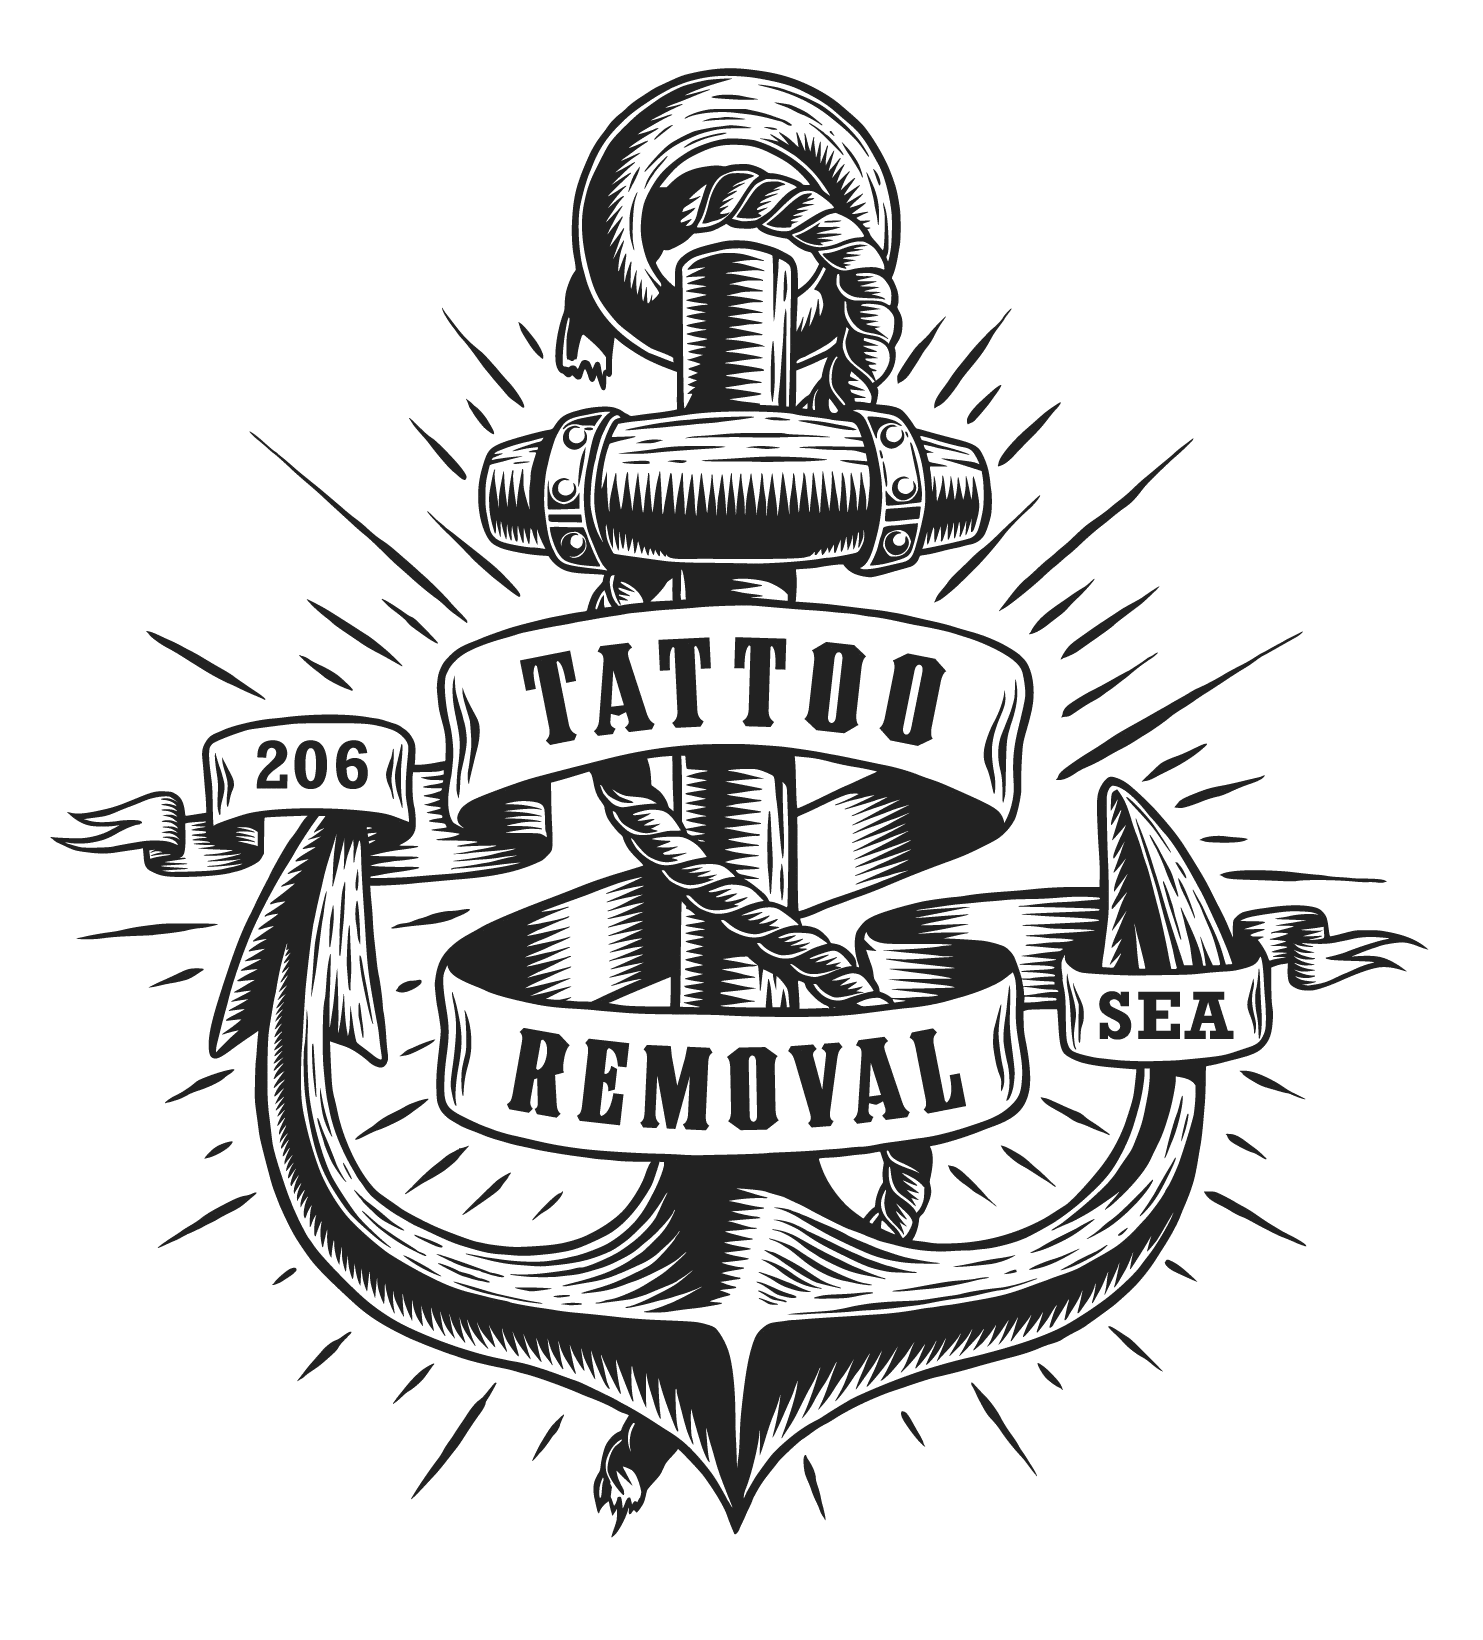 With 20+ years of combined experience and the latest technology you know you are in the right hands for your Tattoo Removal at Well Medical Arts